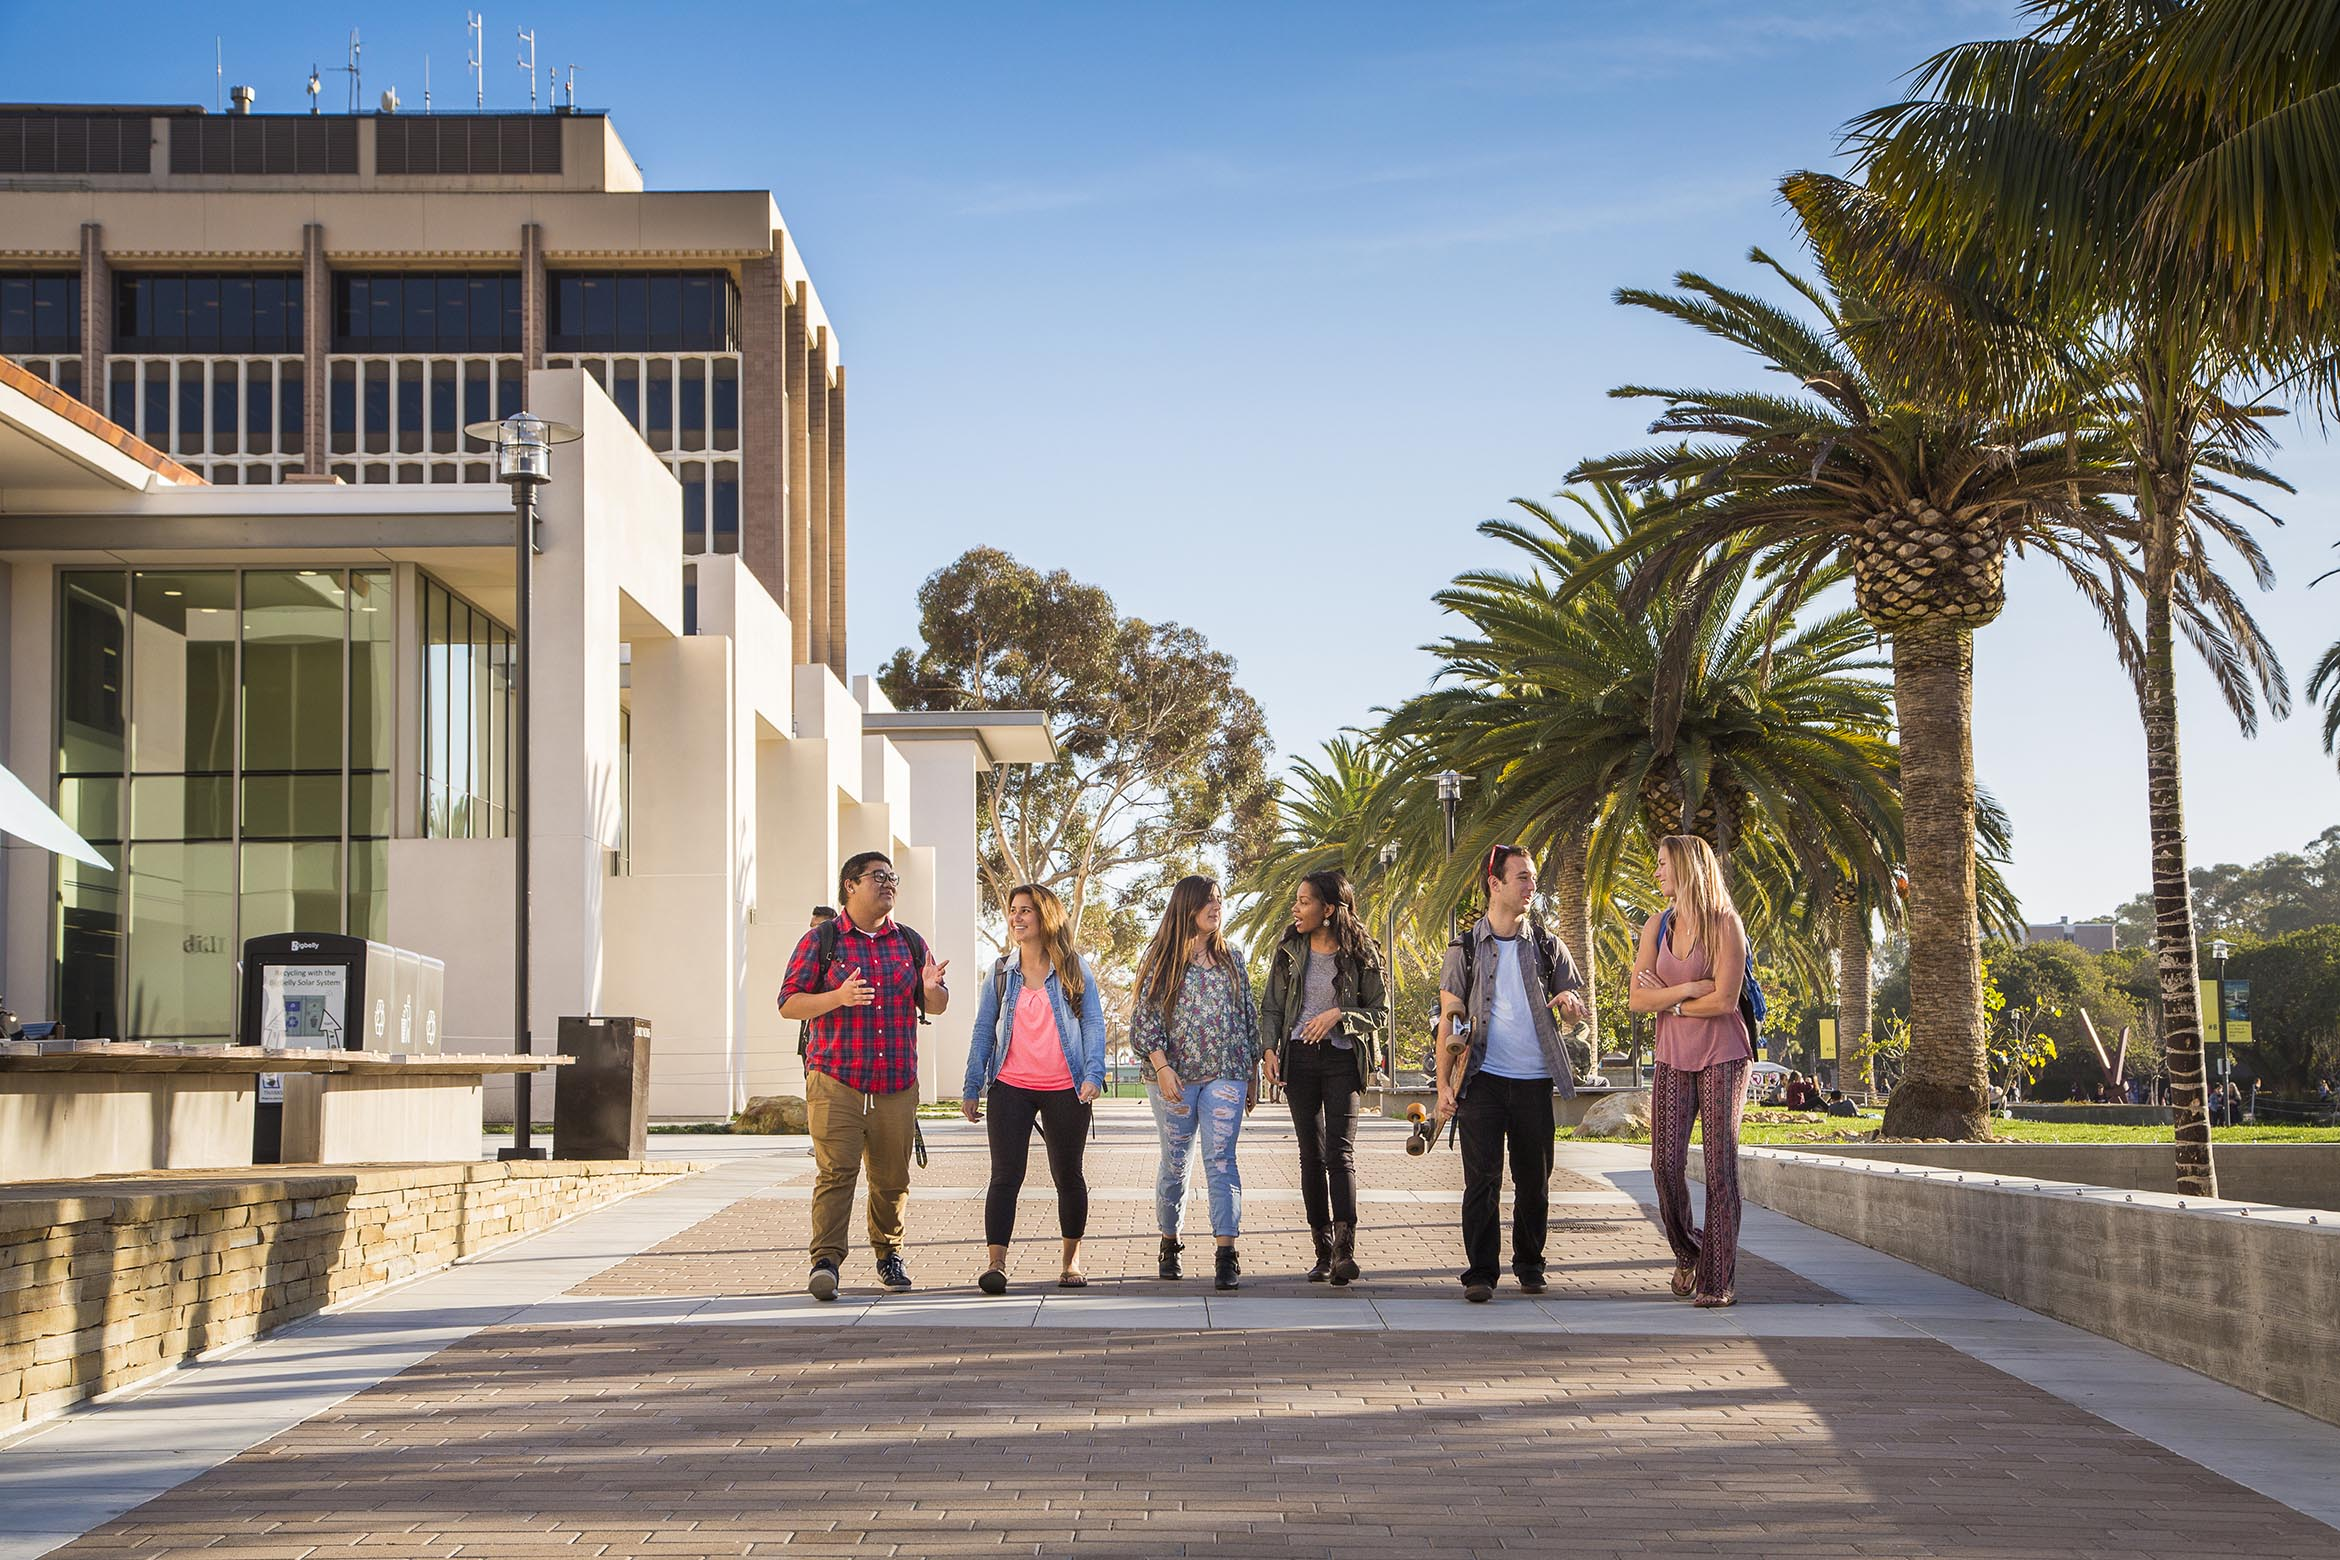 Six students in pairs converse as they walk in front of the library.